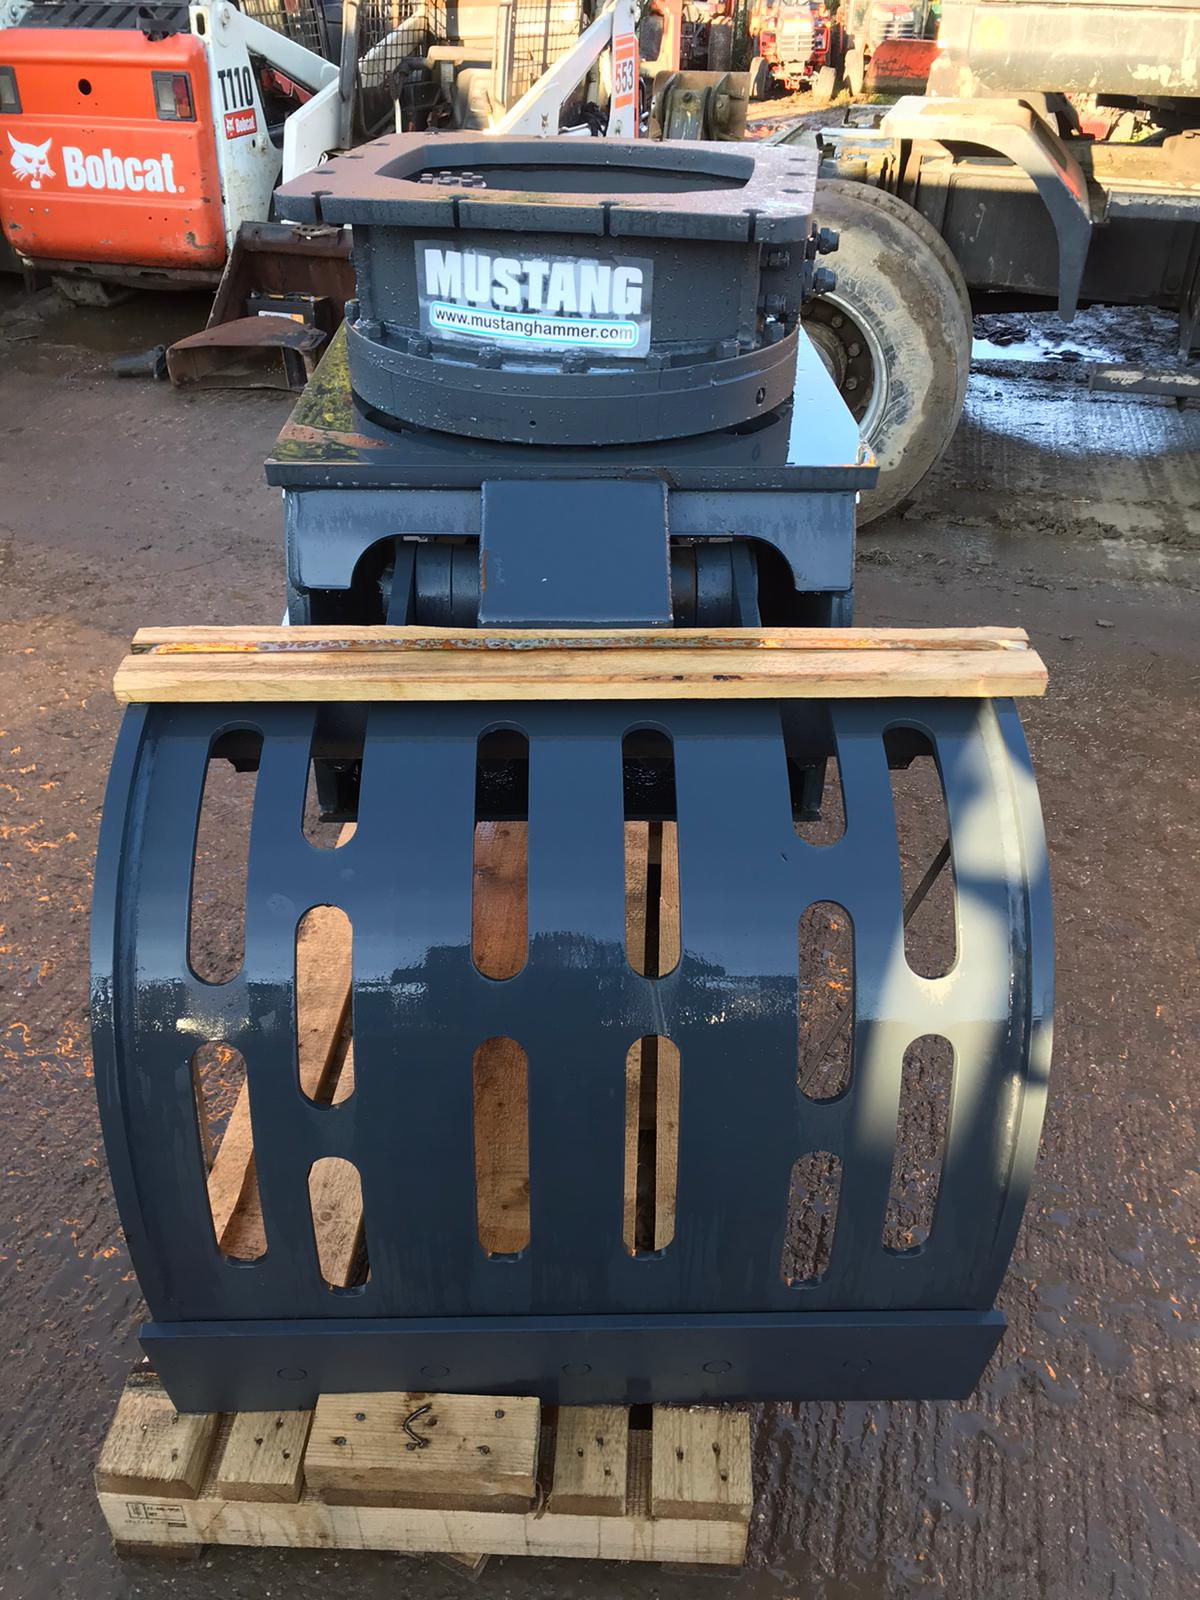 MUSTANG GRP1000 ROTATING GRAPPLE, YEAR 2019, NEW AND UNUSED - TO SUIT 13-19 TON EXCAVATOR *PLUS VAT* - Image 5 of 6